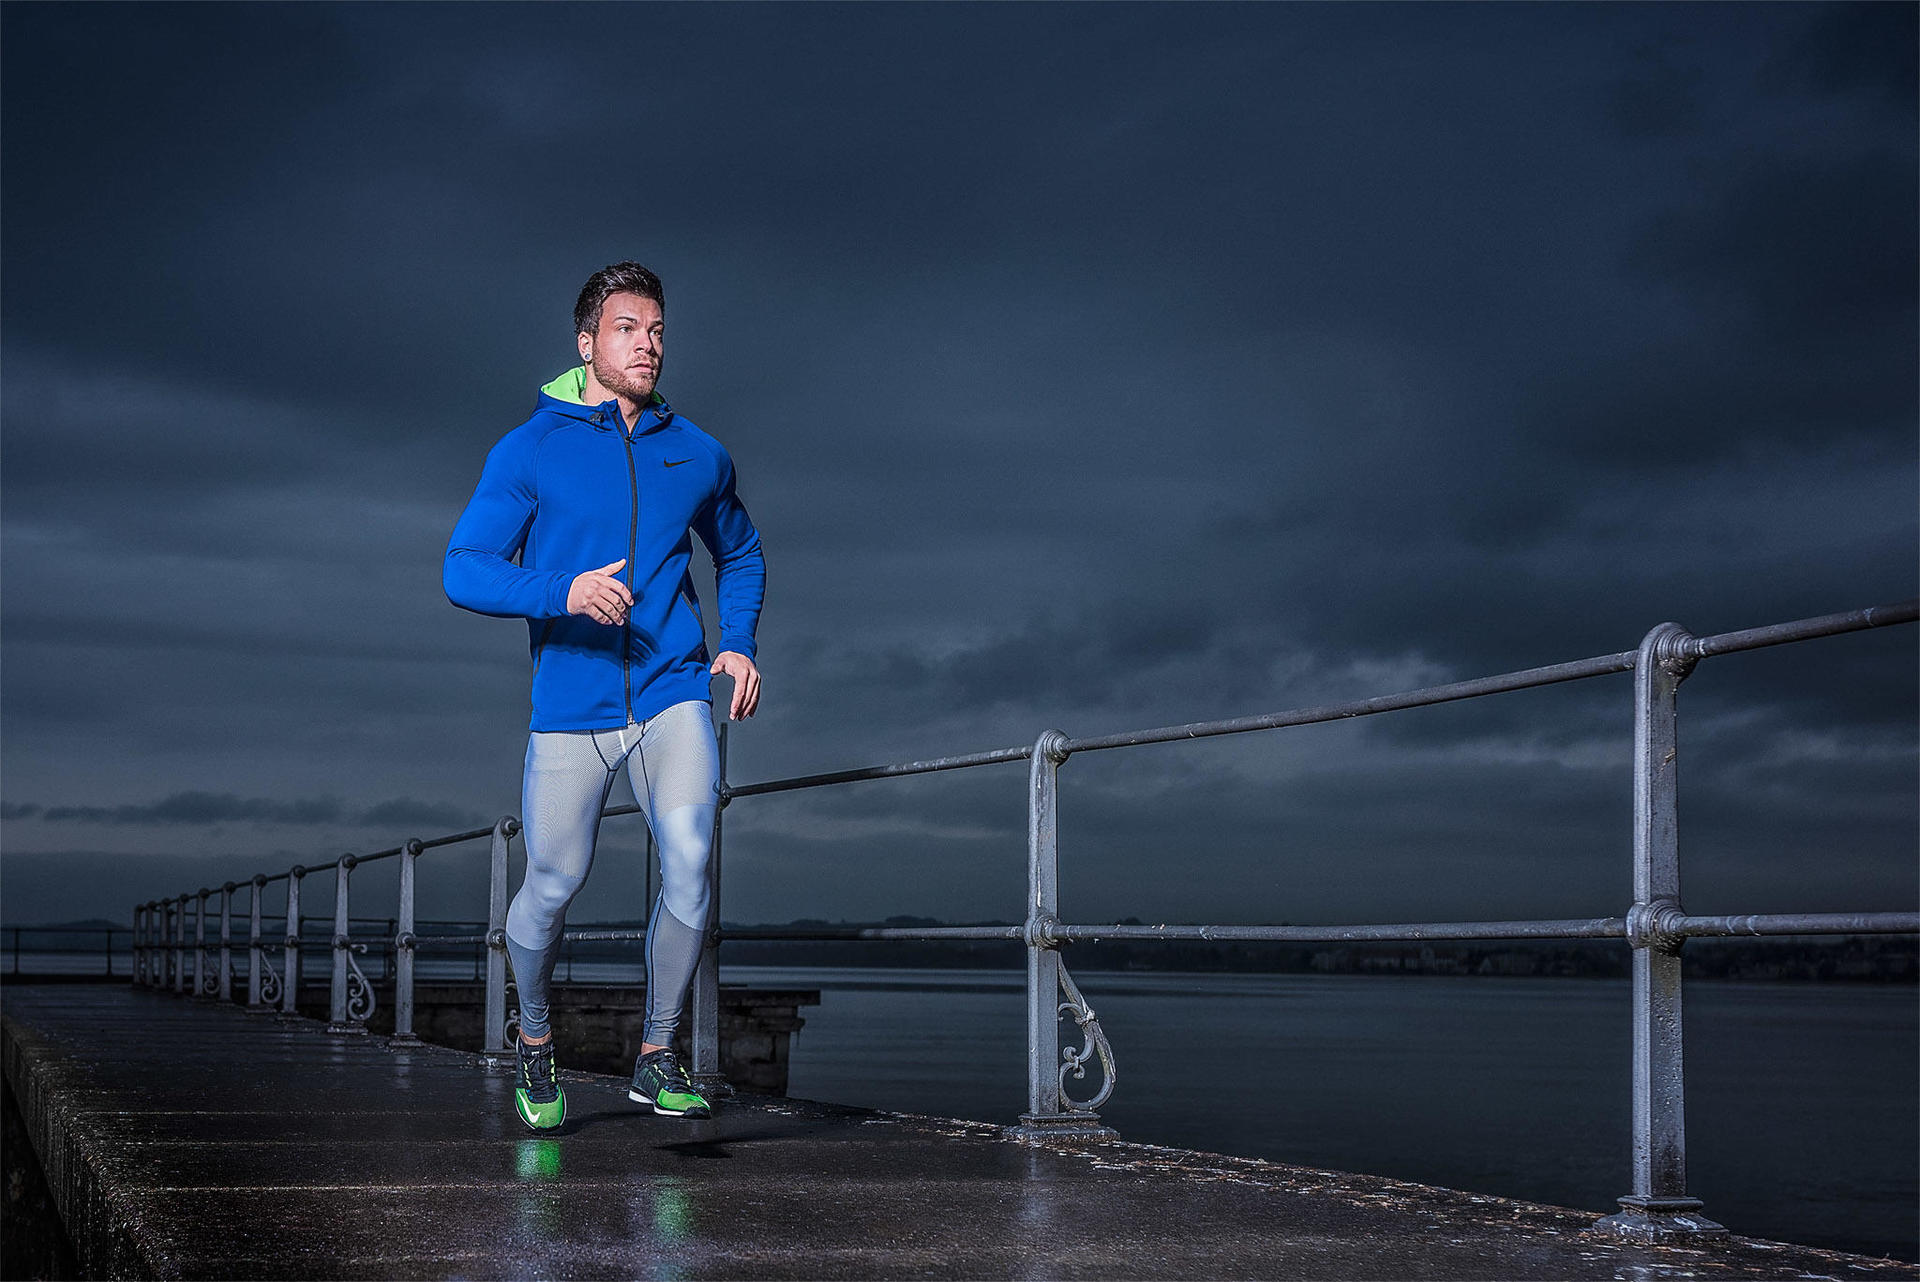 bertolini-photo-nike-running-3